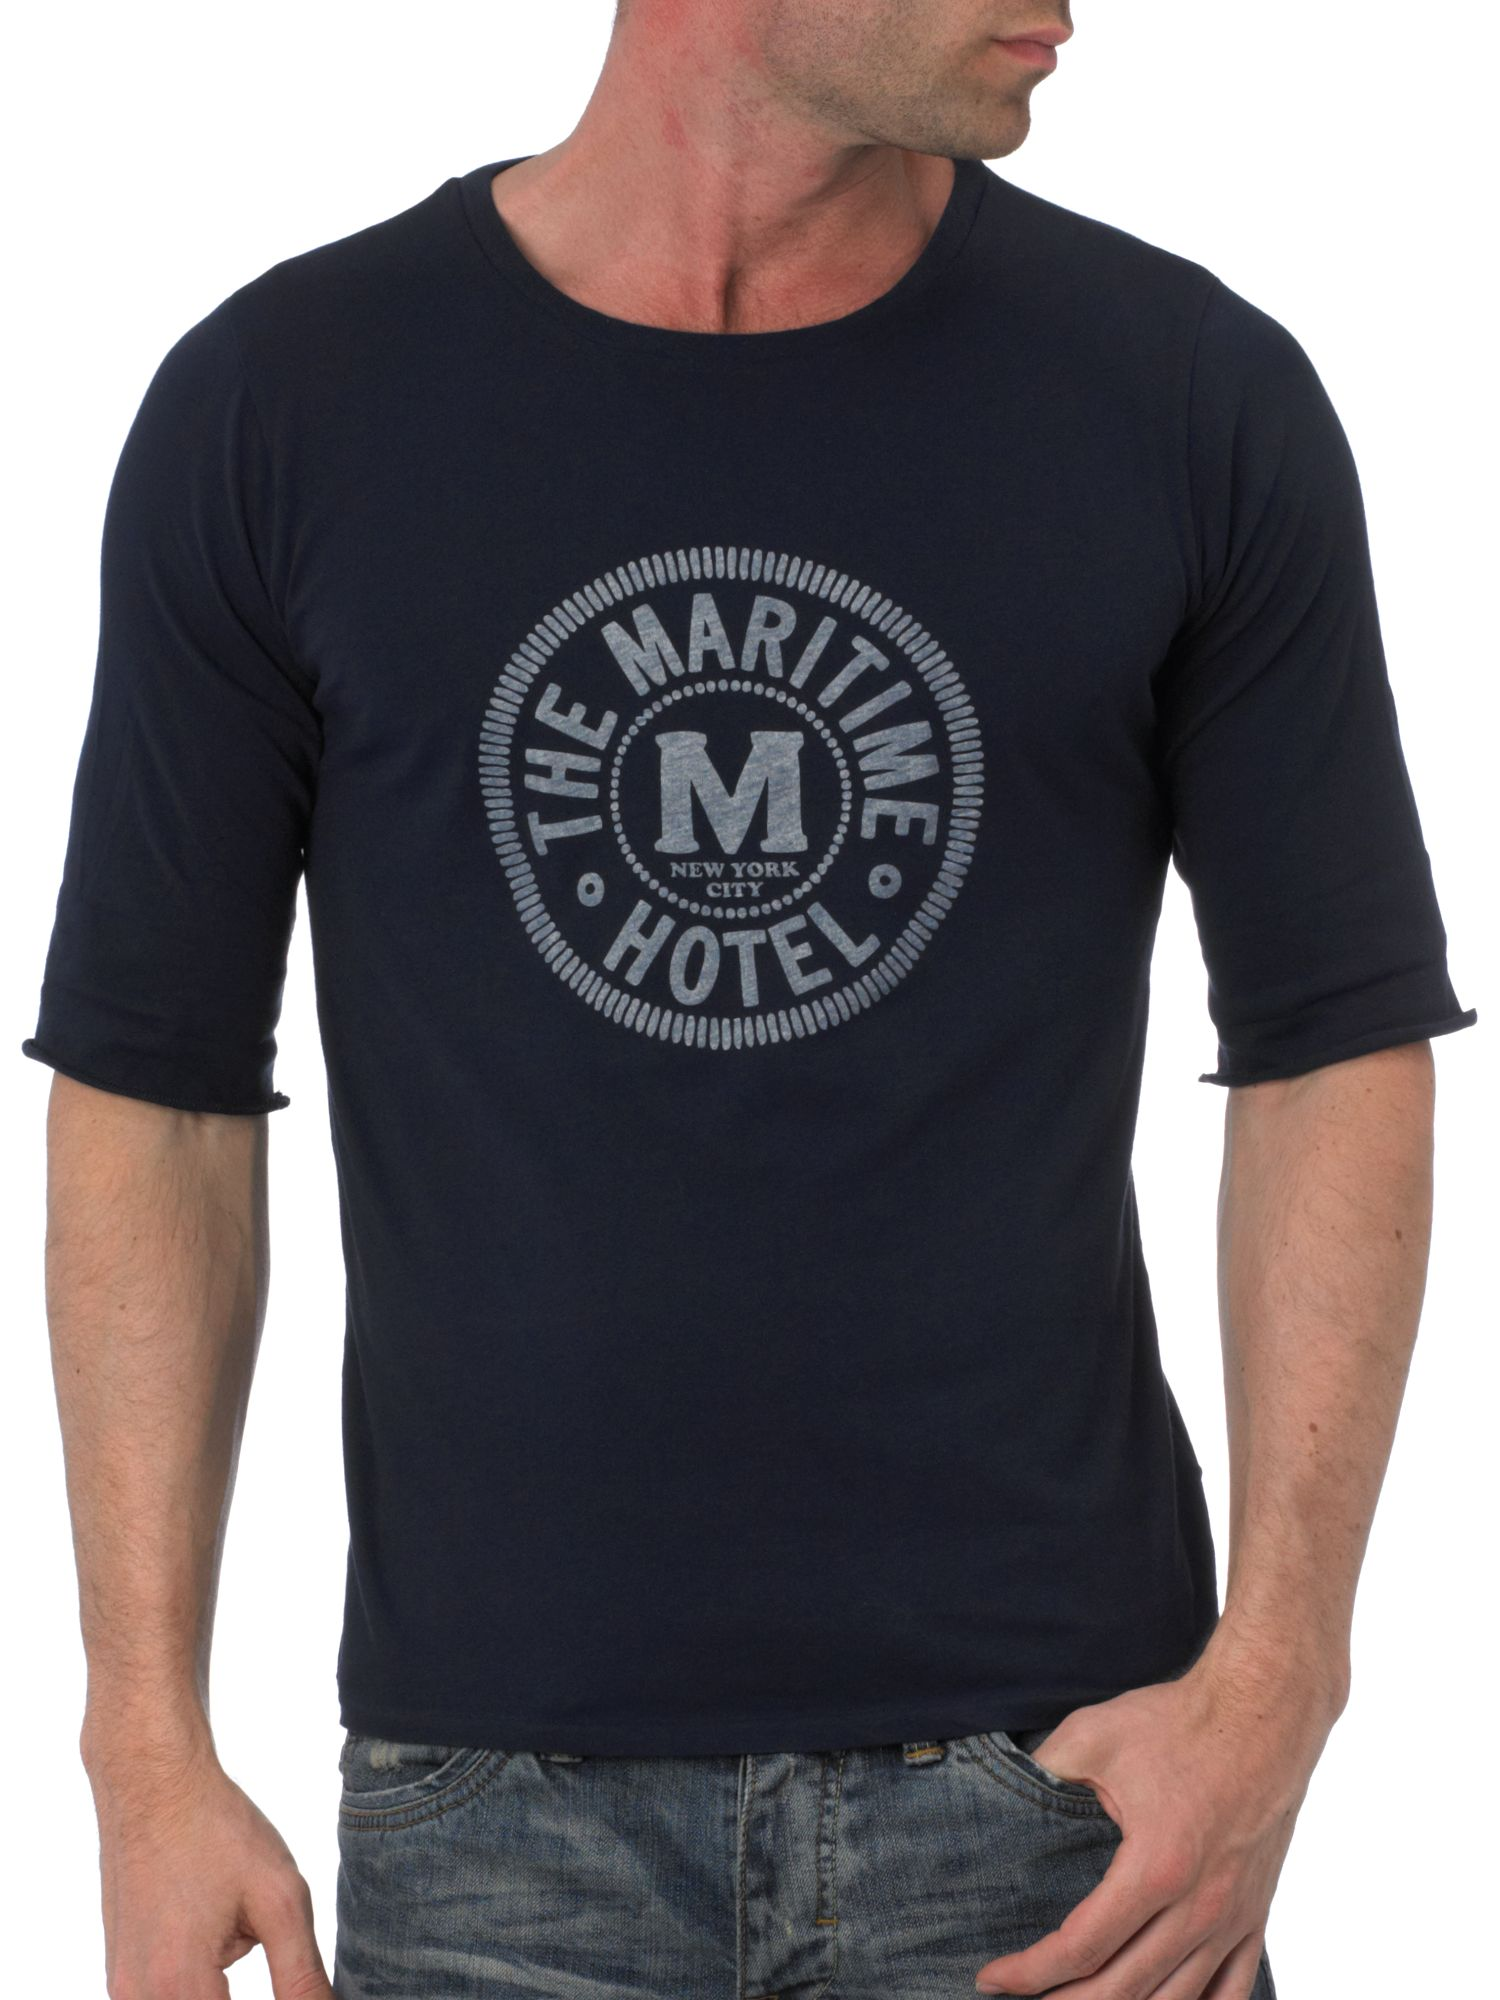 Rugger Roll sleeve maritime t-shirt product image